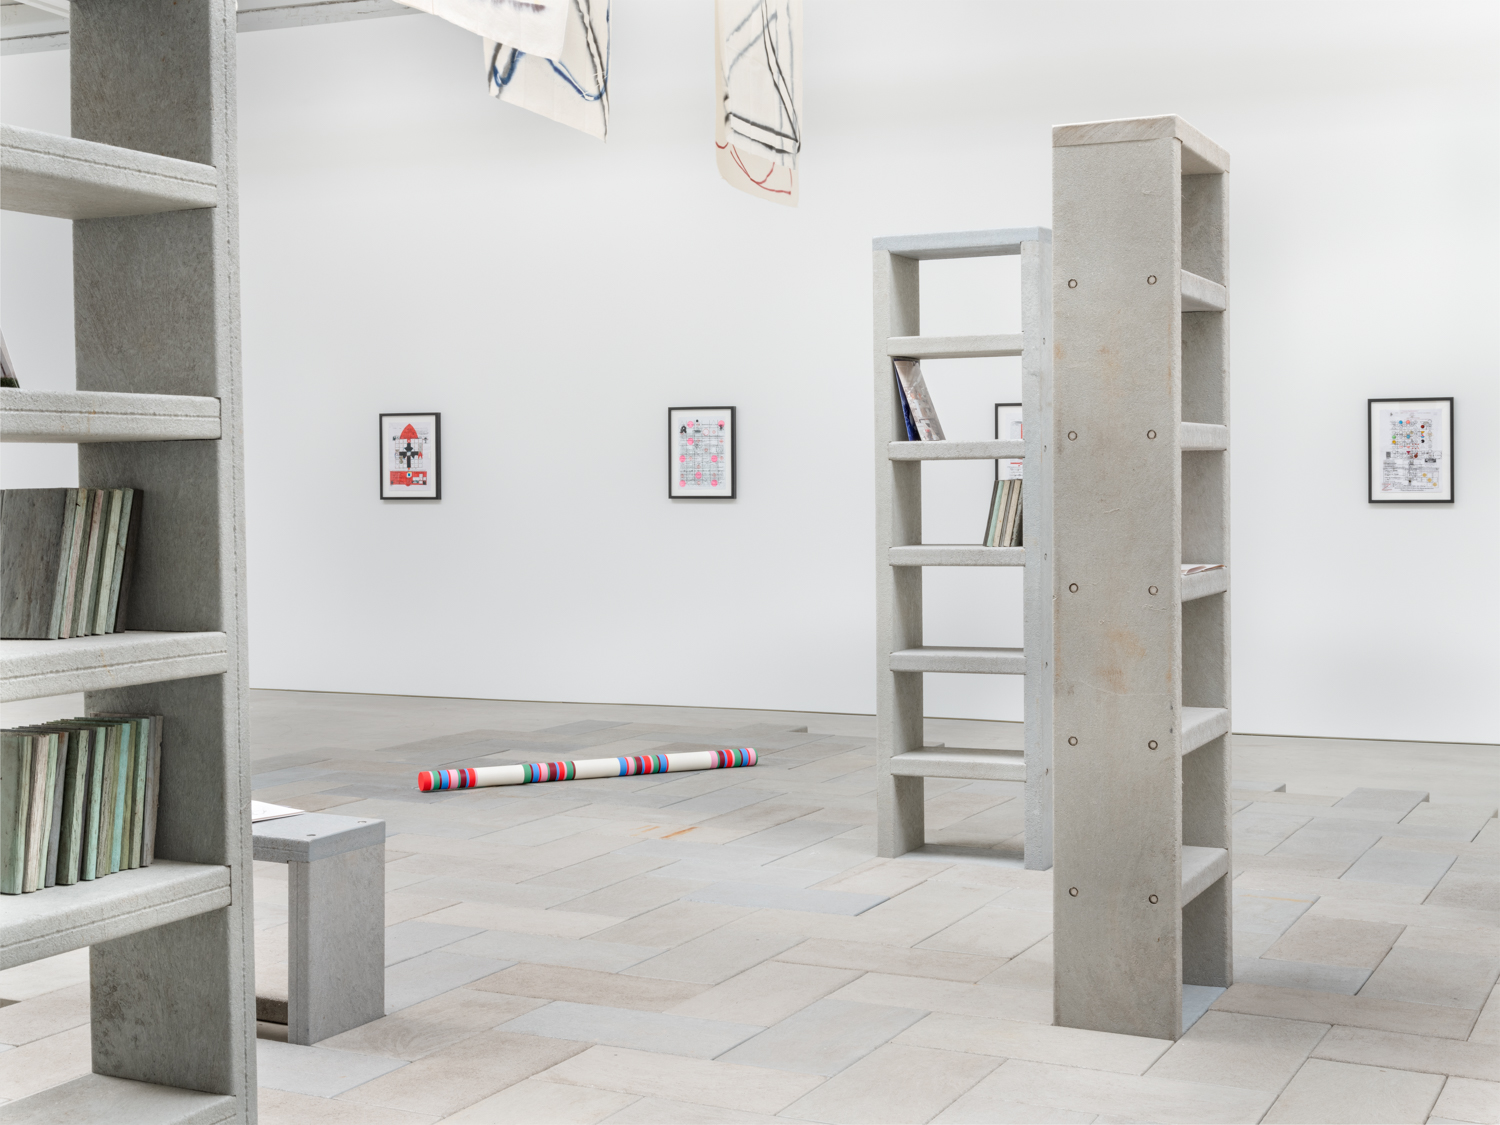 FMSBWTÖZÄU       PGGIV-..?MÜ       (FOR STEPHEN FOSTER) 2019 Installation view Shane Campbell Gallery